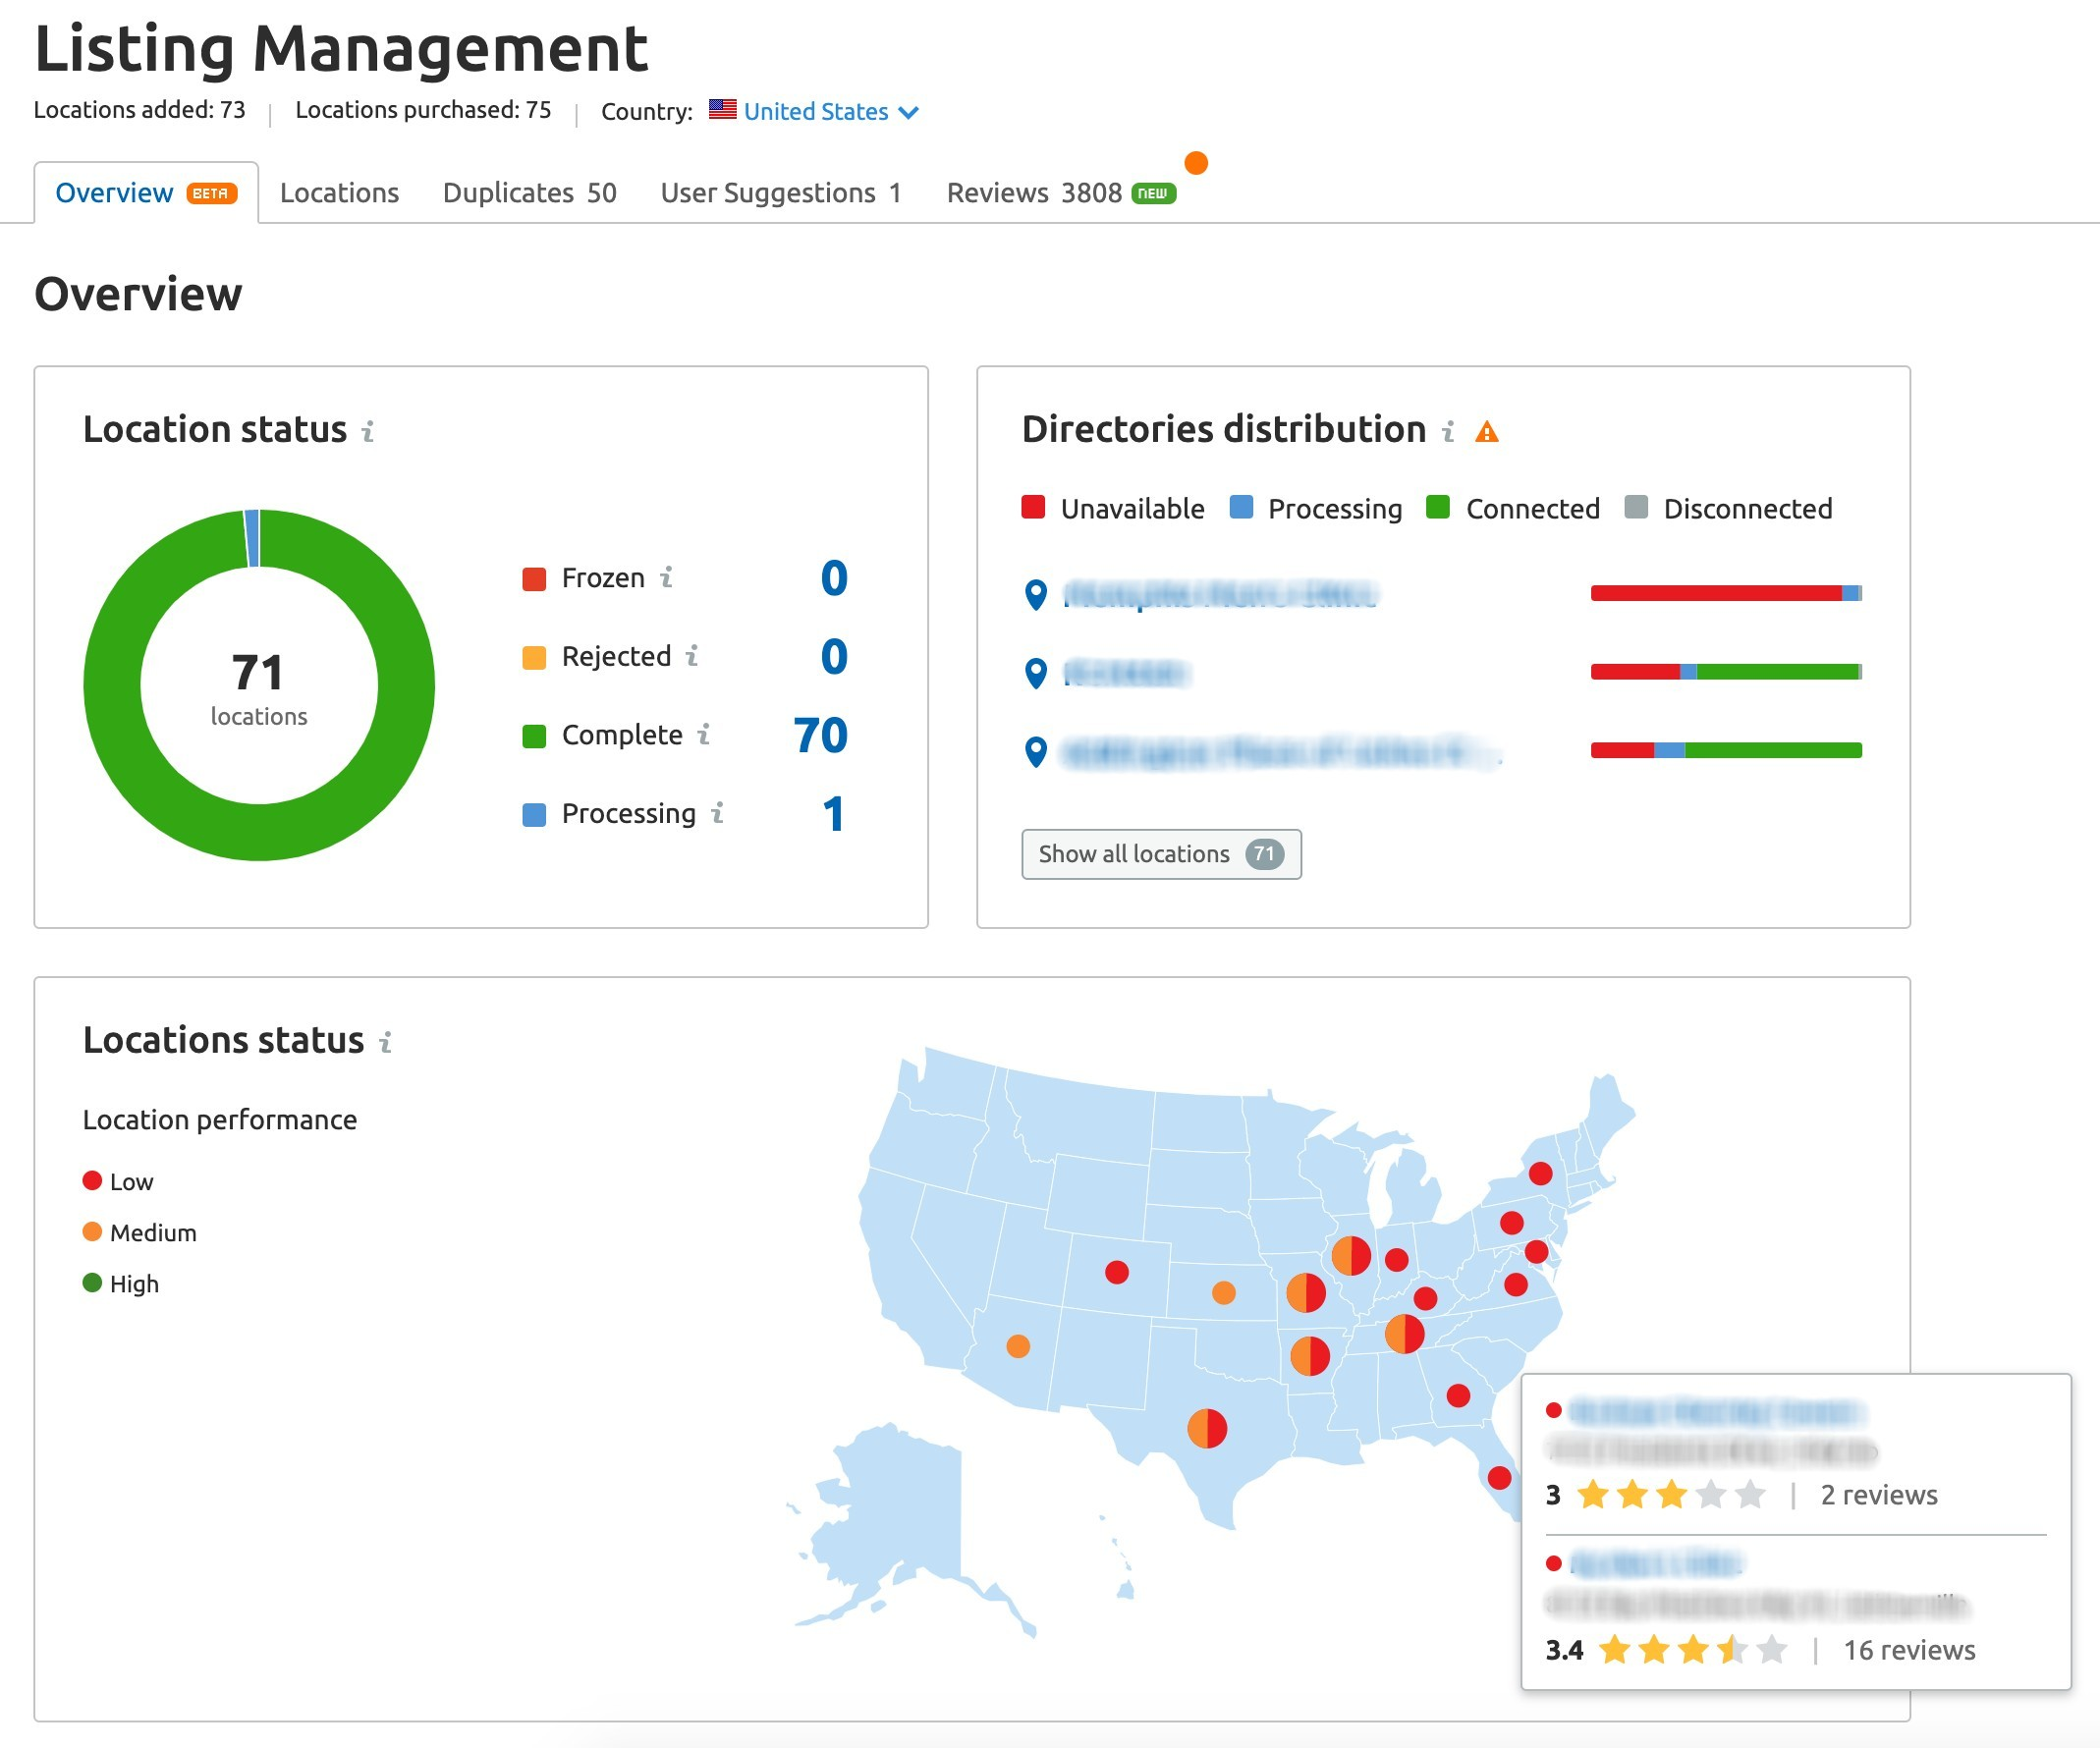 New Overview report in the Listing Management tool